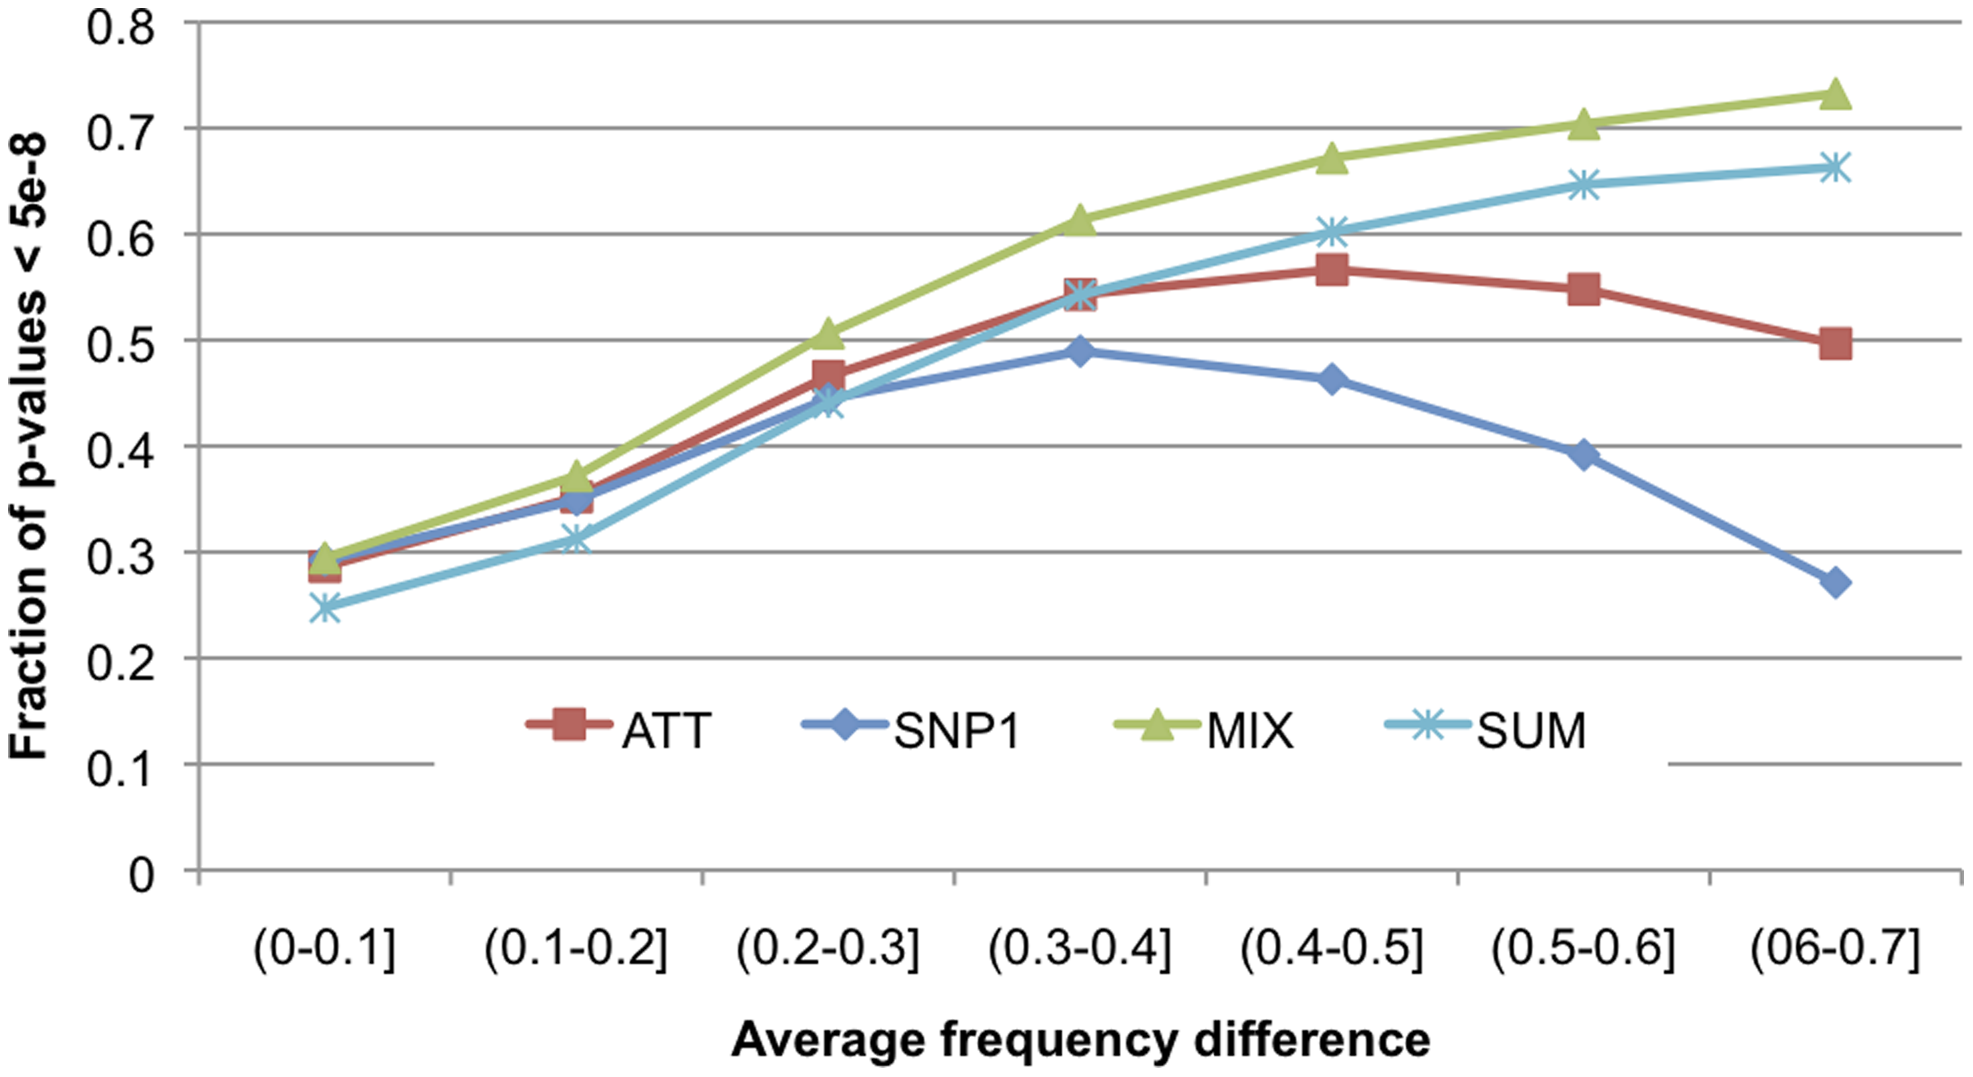 Statistical power of SNP1, ATT, MIX scores as a function of population differentiation.